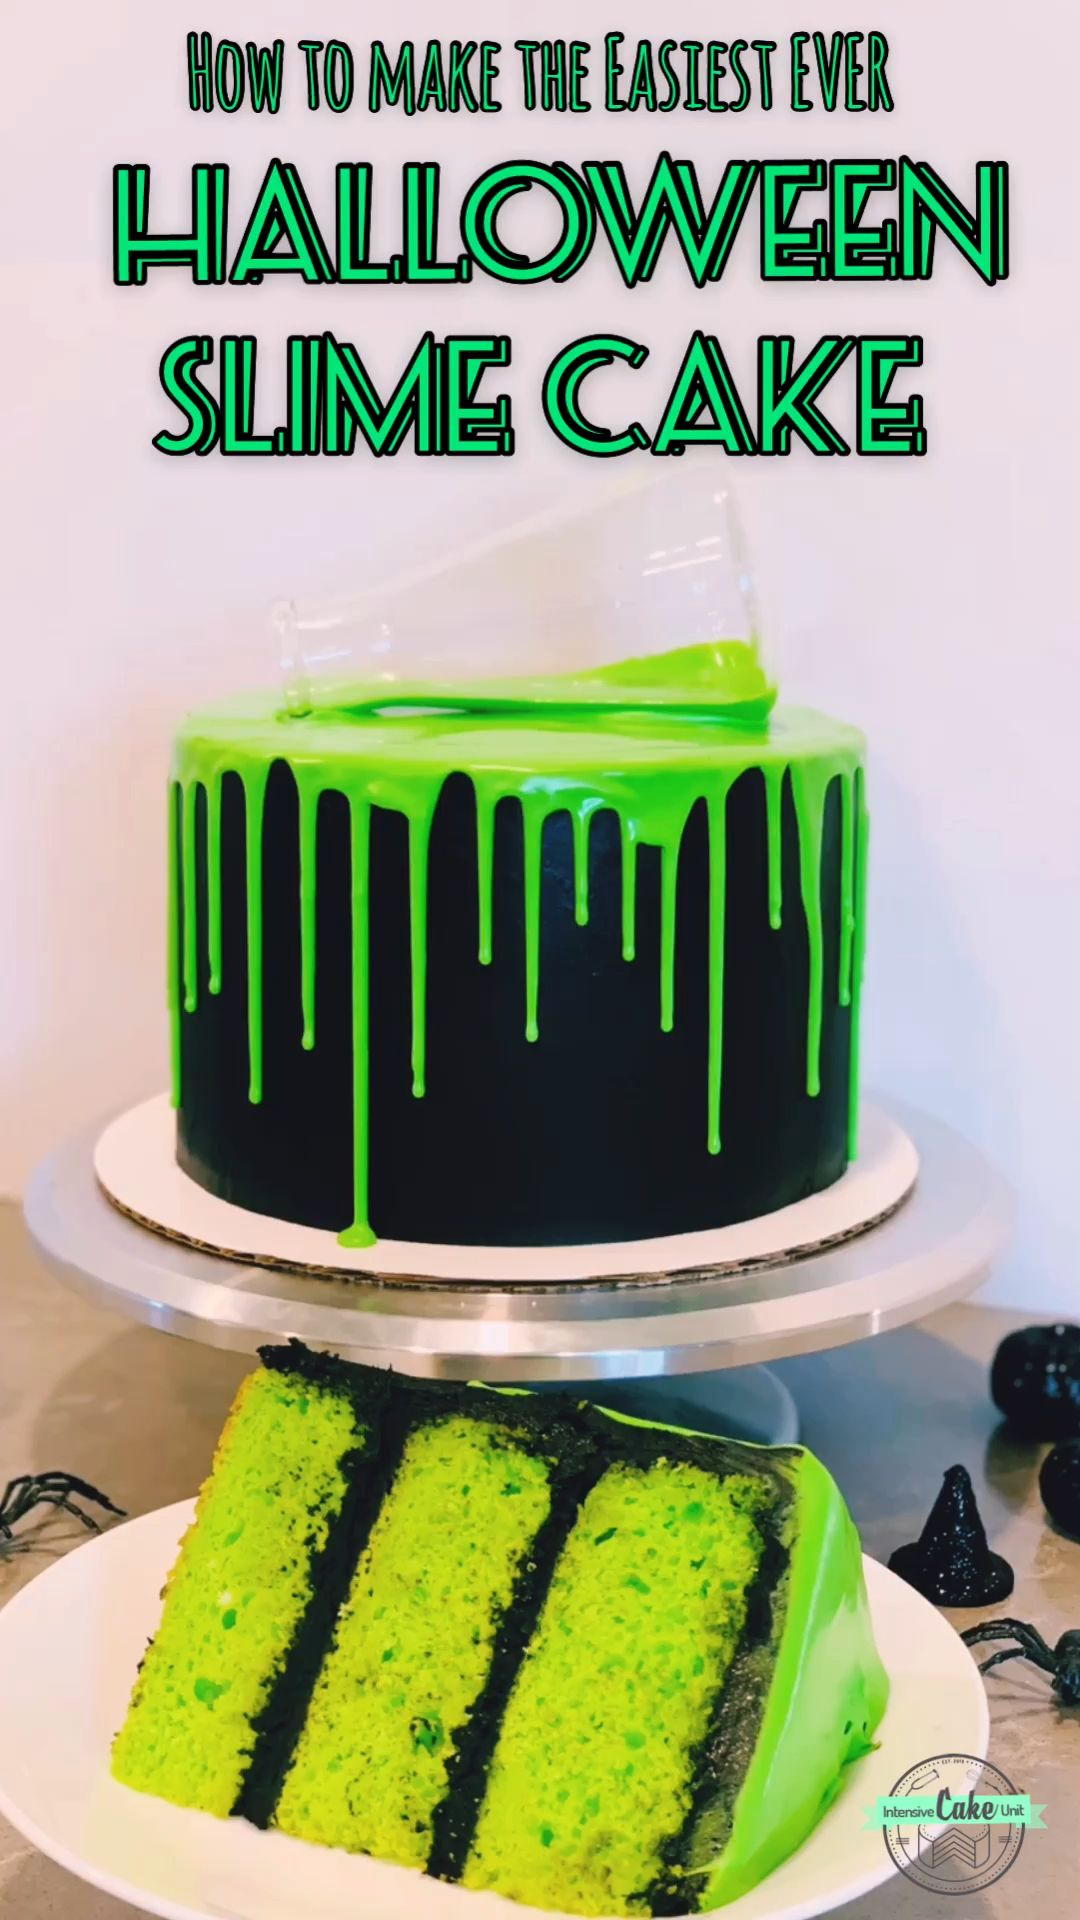 How to make a creepy-looking but delicious Halloween green 'slime' drip cake! Super simple and perfect for any Halloween party! #halloweencakes #dripcakes #simplecakedecorating #easyhalloweencakes #halloweenbaking #halloweencakeideas #halloweenbakingideas #halloweenparty